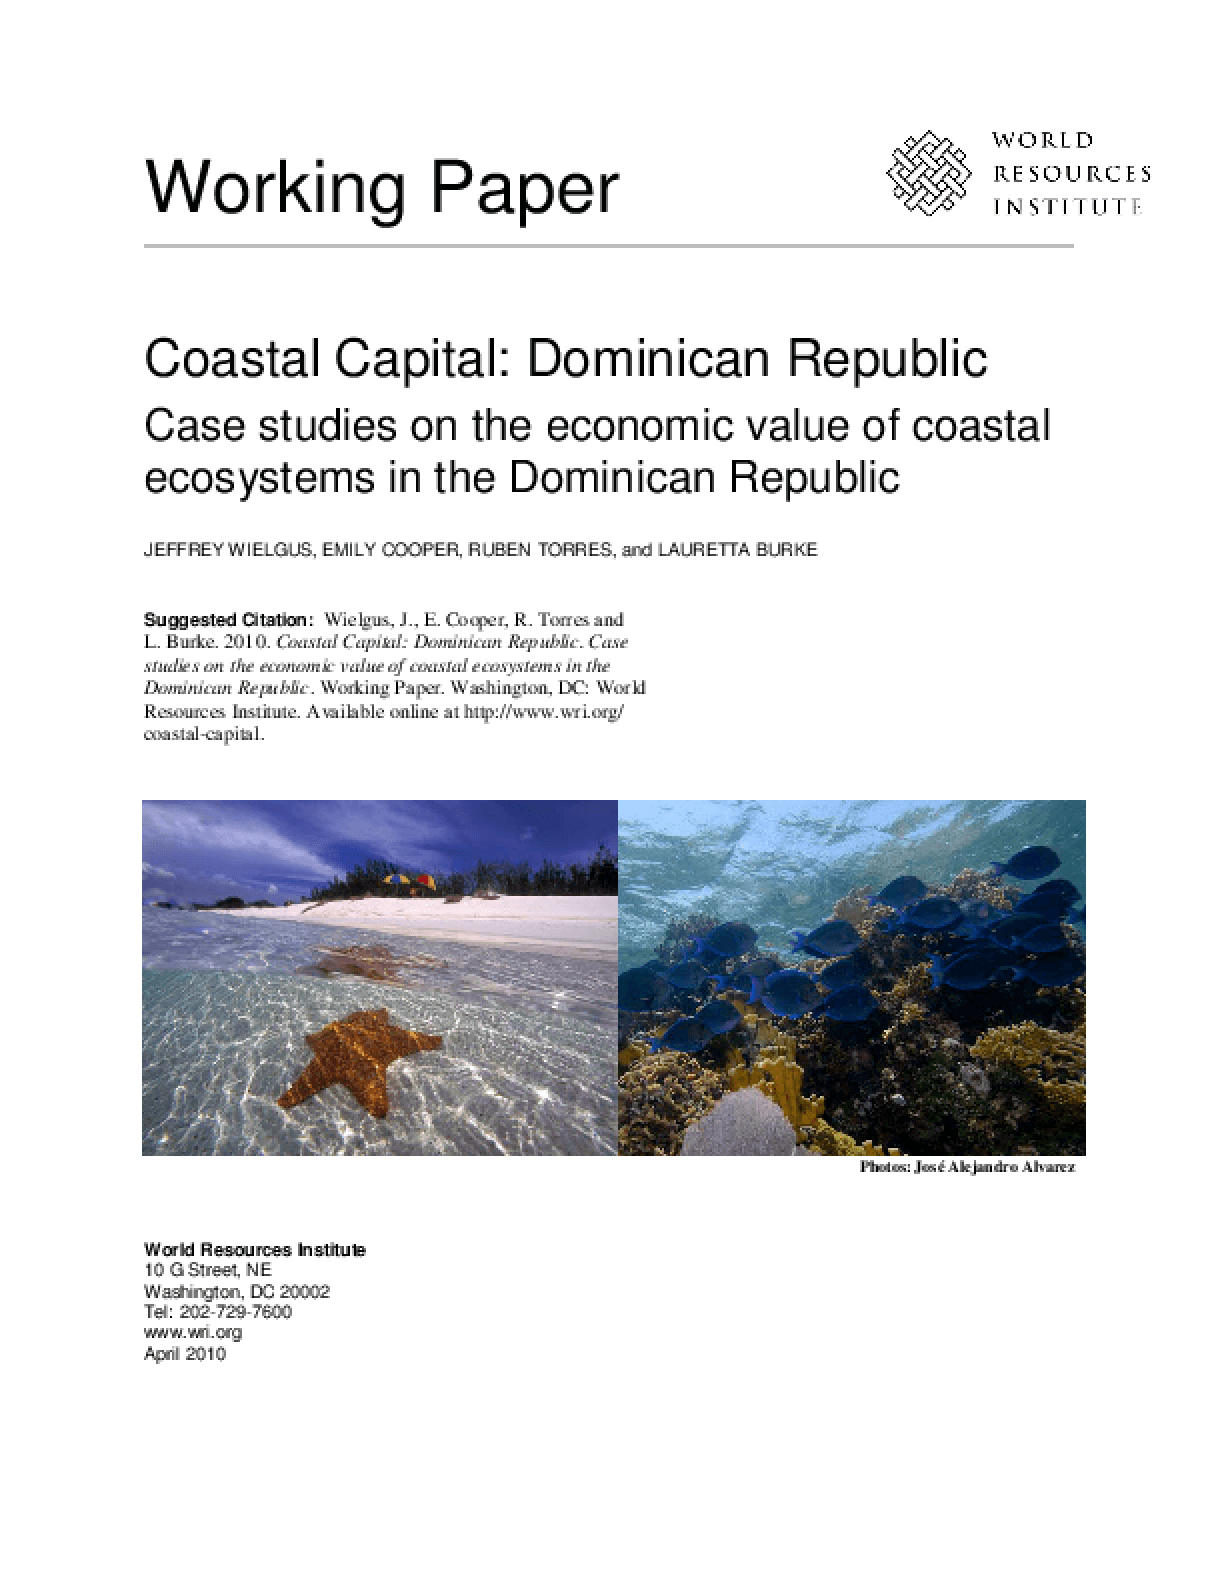 Coastal Capital: Dominican Republic: Case Studies on the Economic Value of Coastal Ecosystems in the Dominican Republic